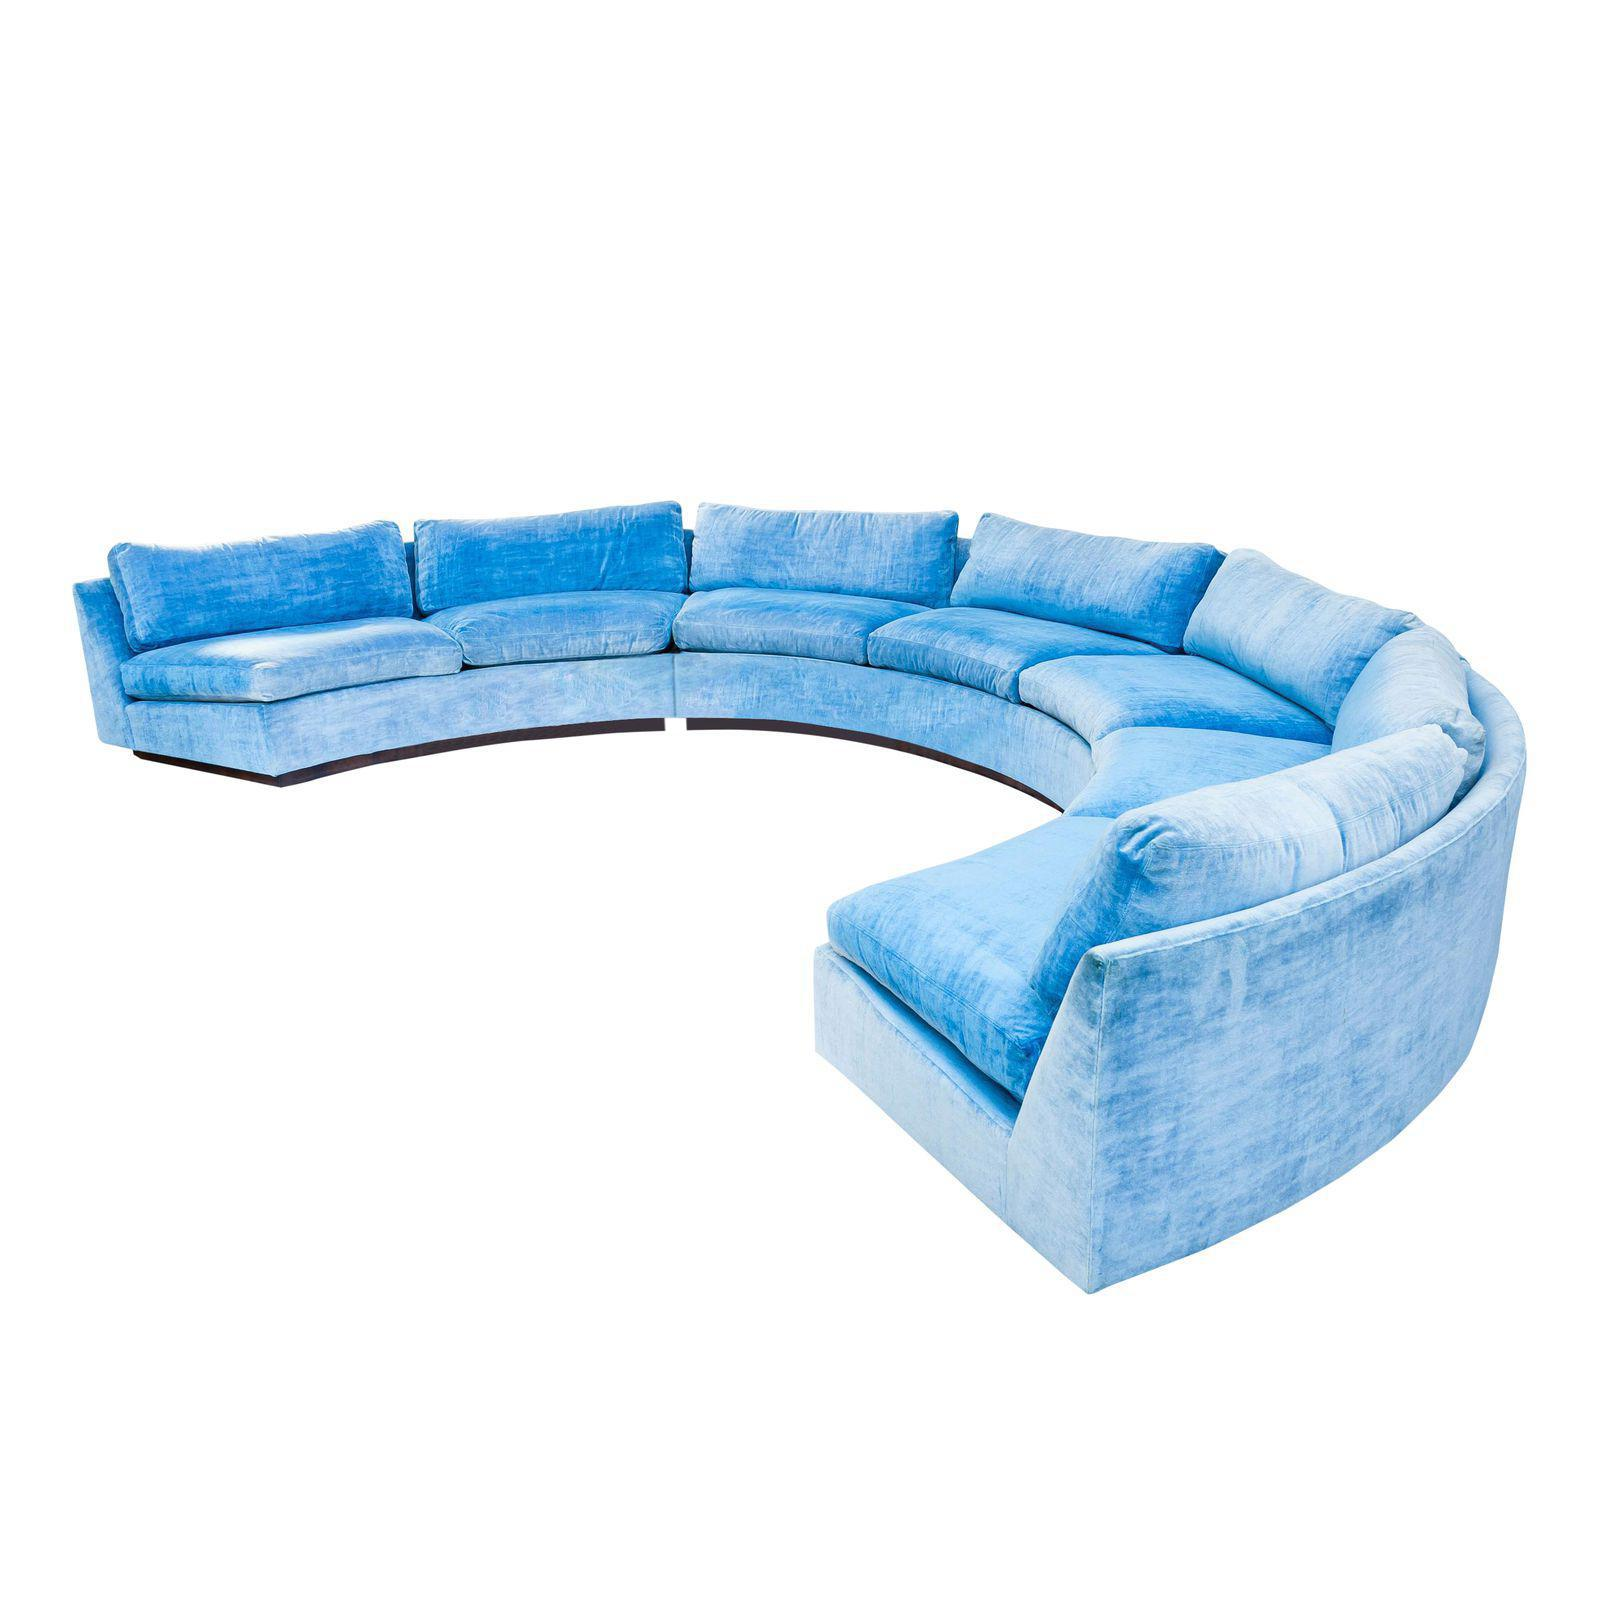 Milo Baughman Curved Sofa With Rosewood Base